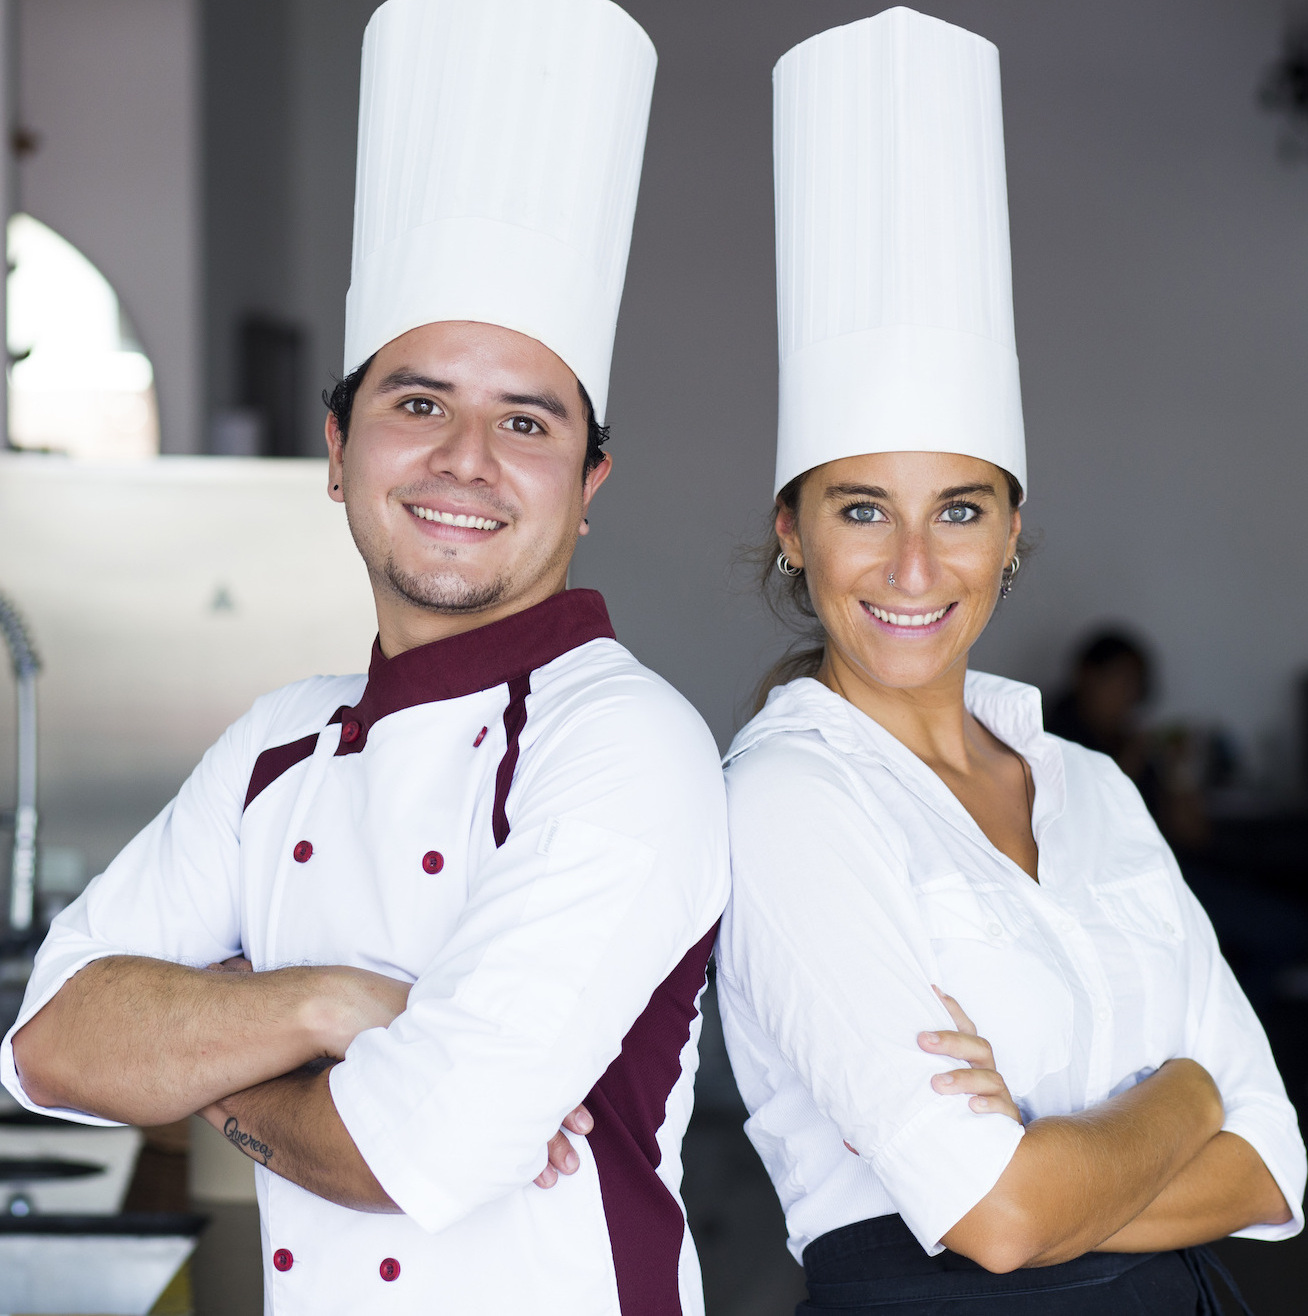 Prep cook and executive chef